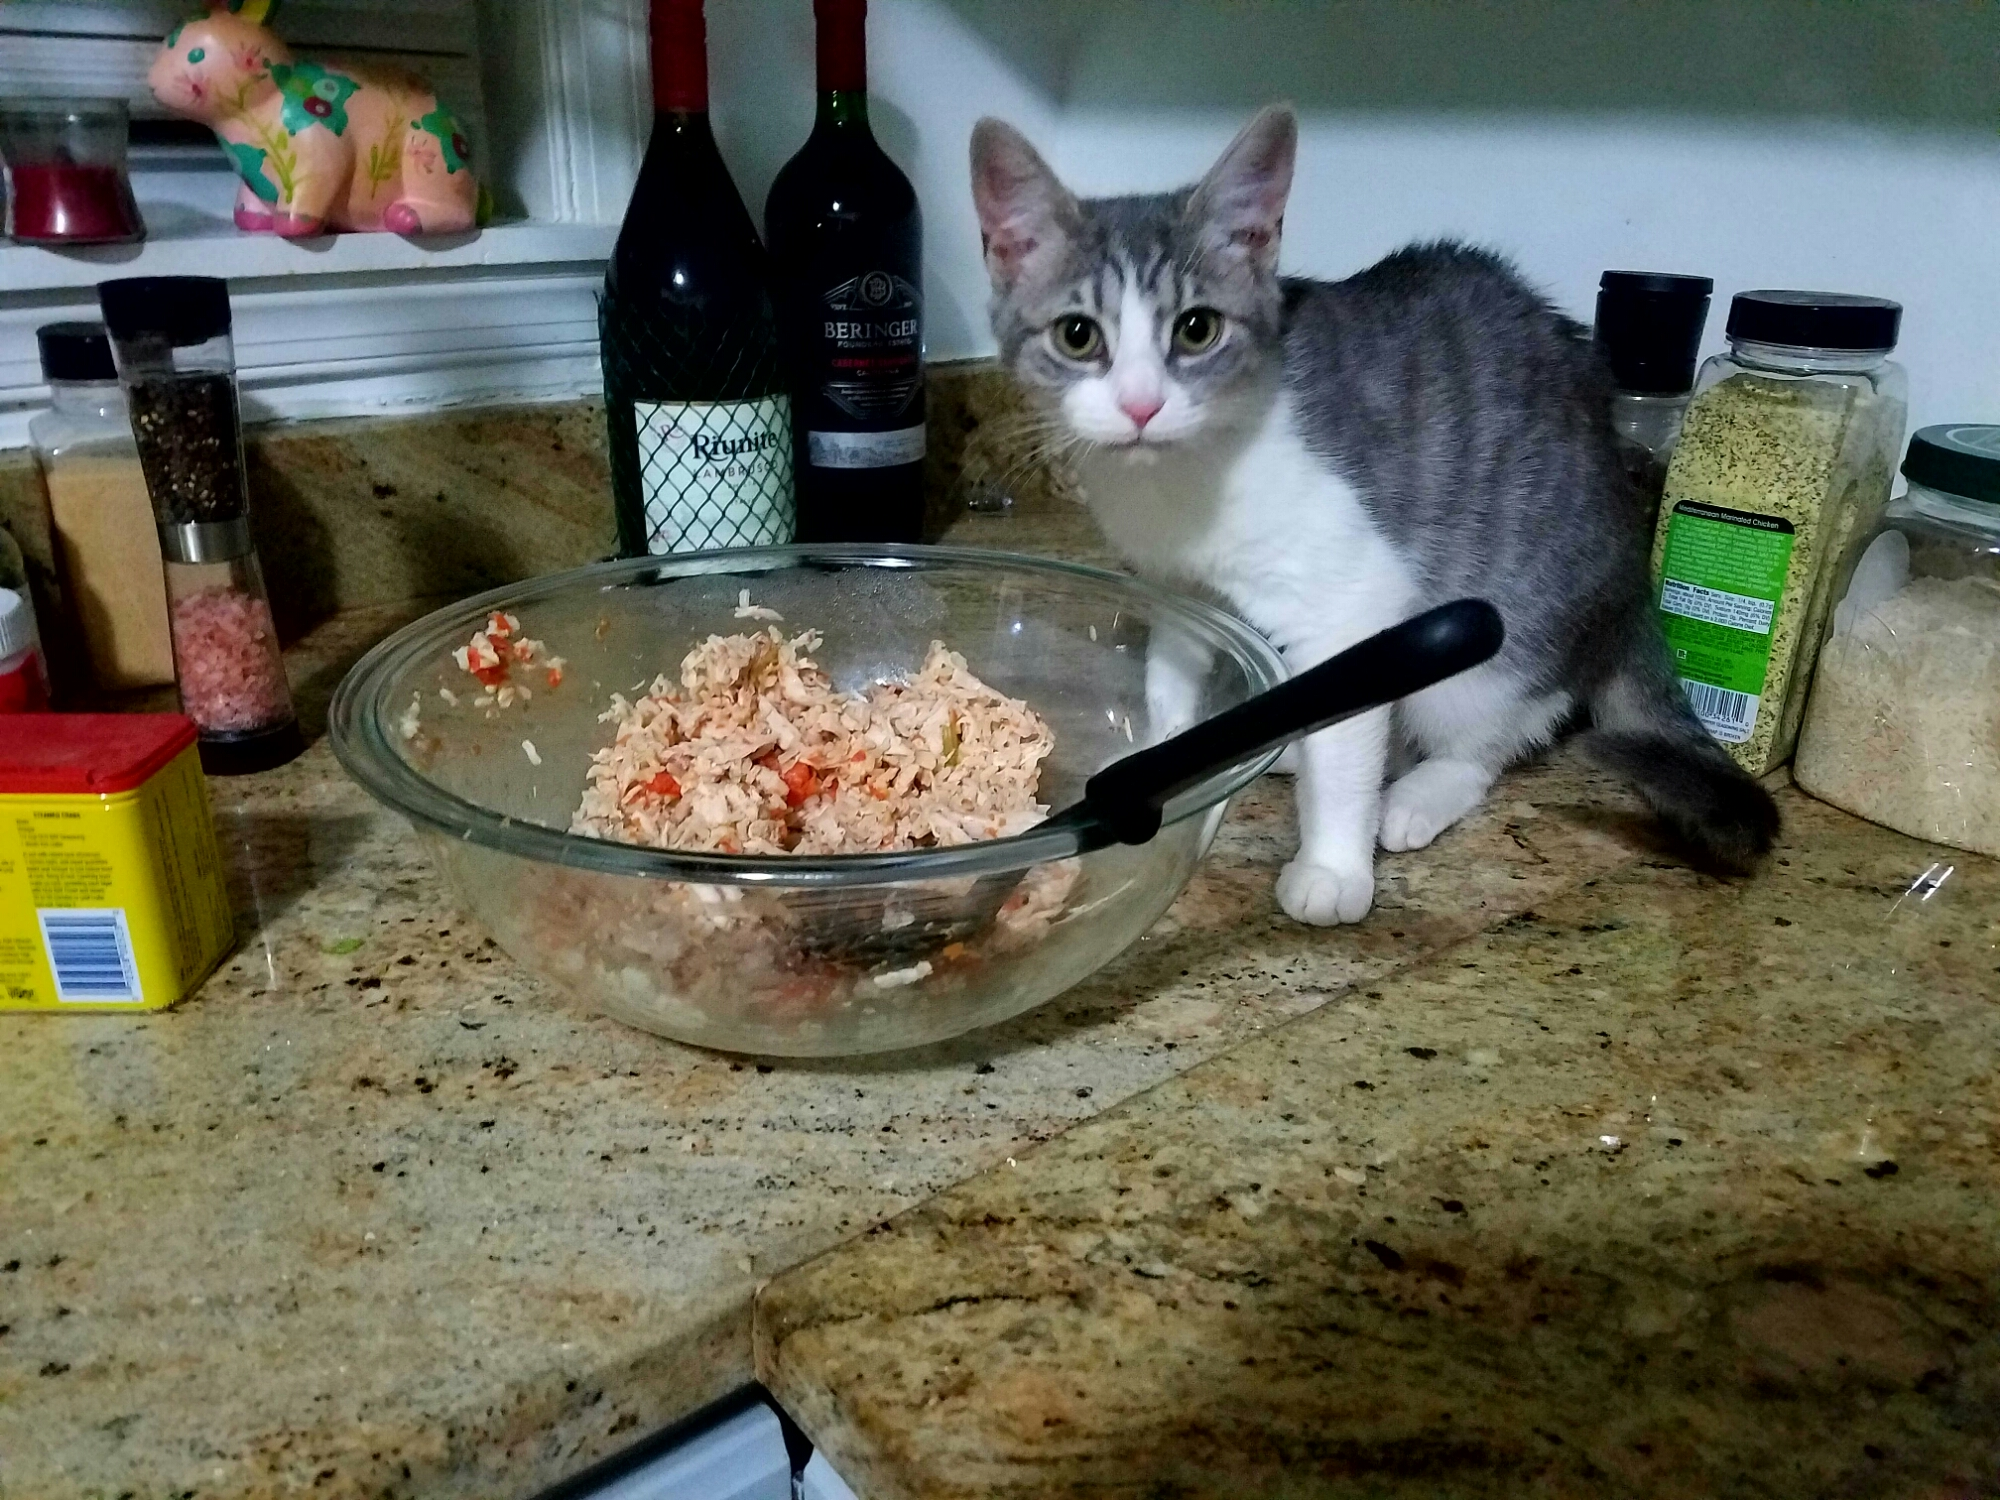 Homemade Woofie Food you say, Humans, with organic chicken, celery, carrot and brown rice? Are you certain you followed the recipe correctly?